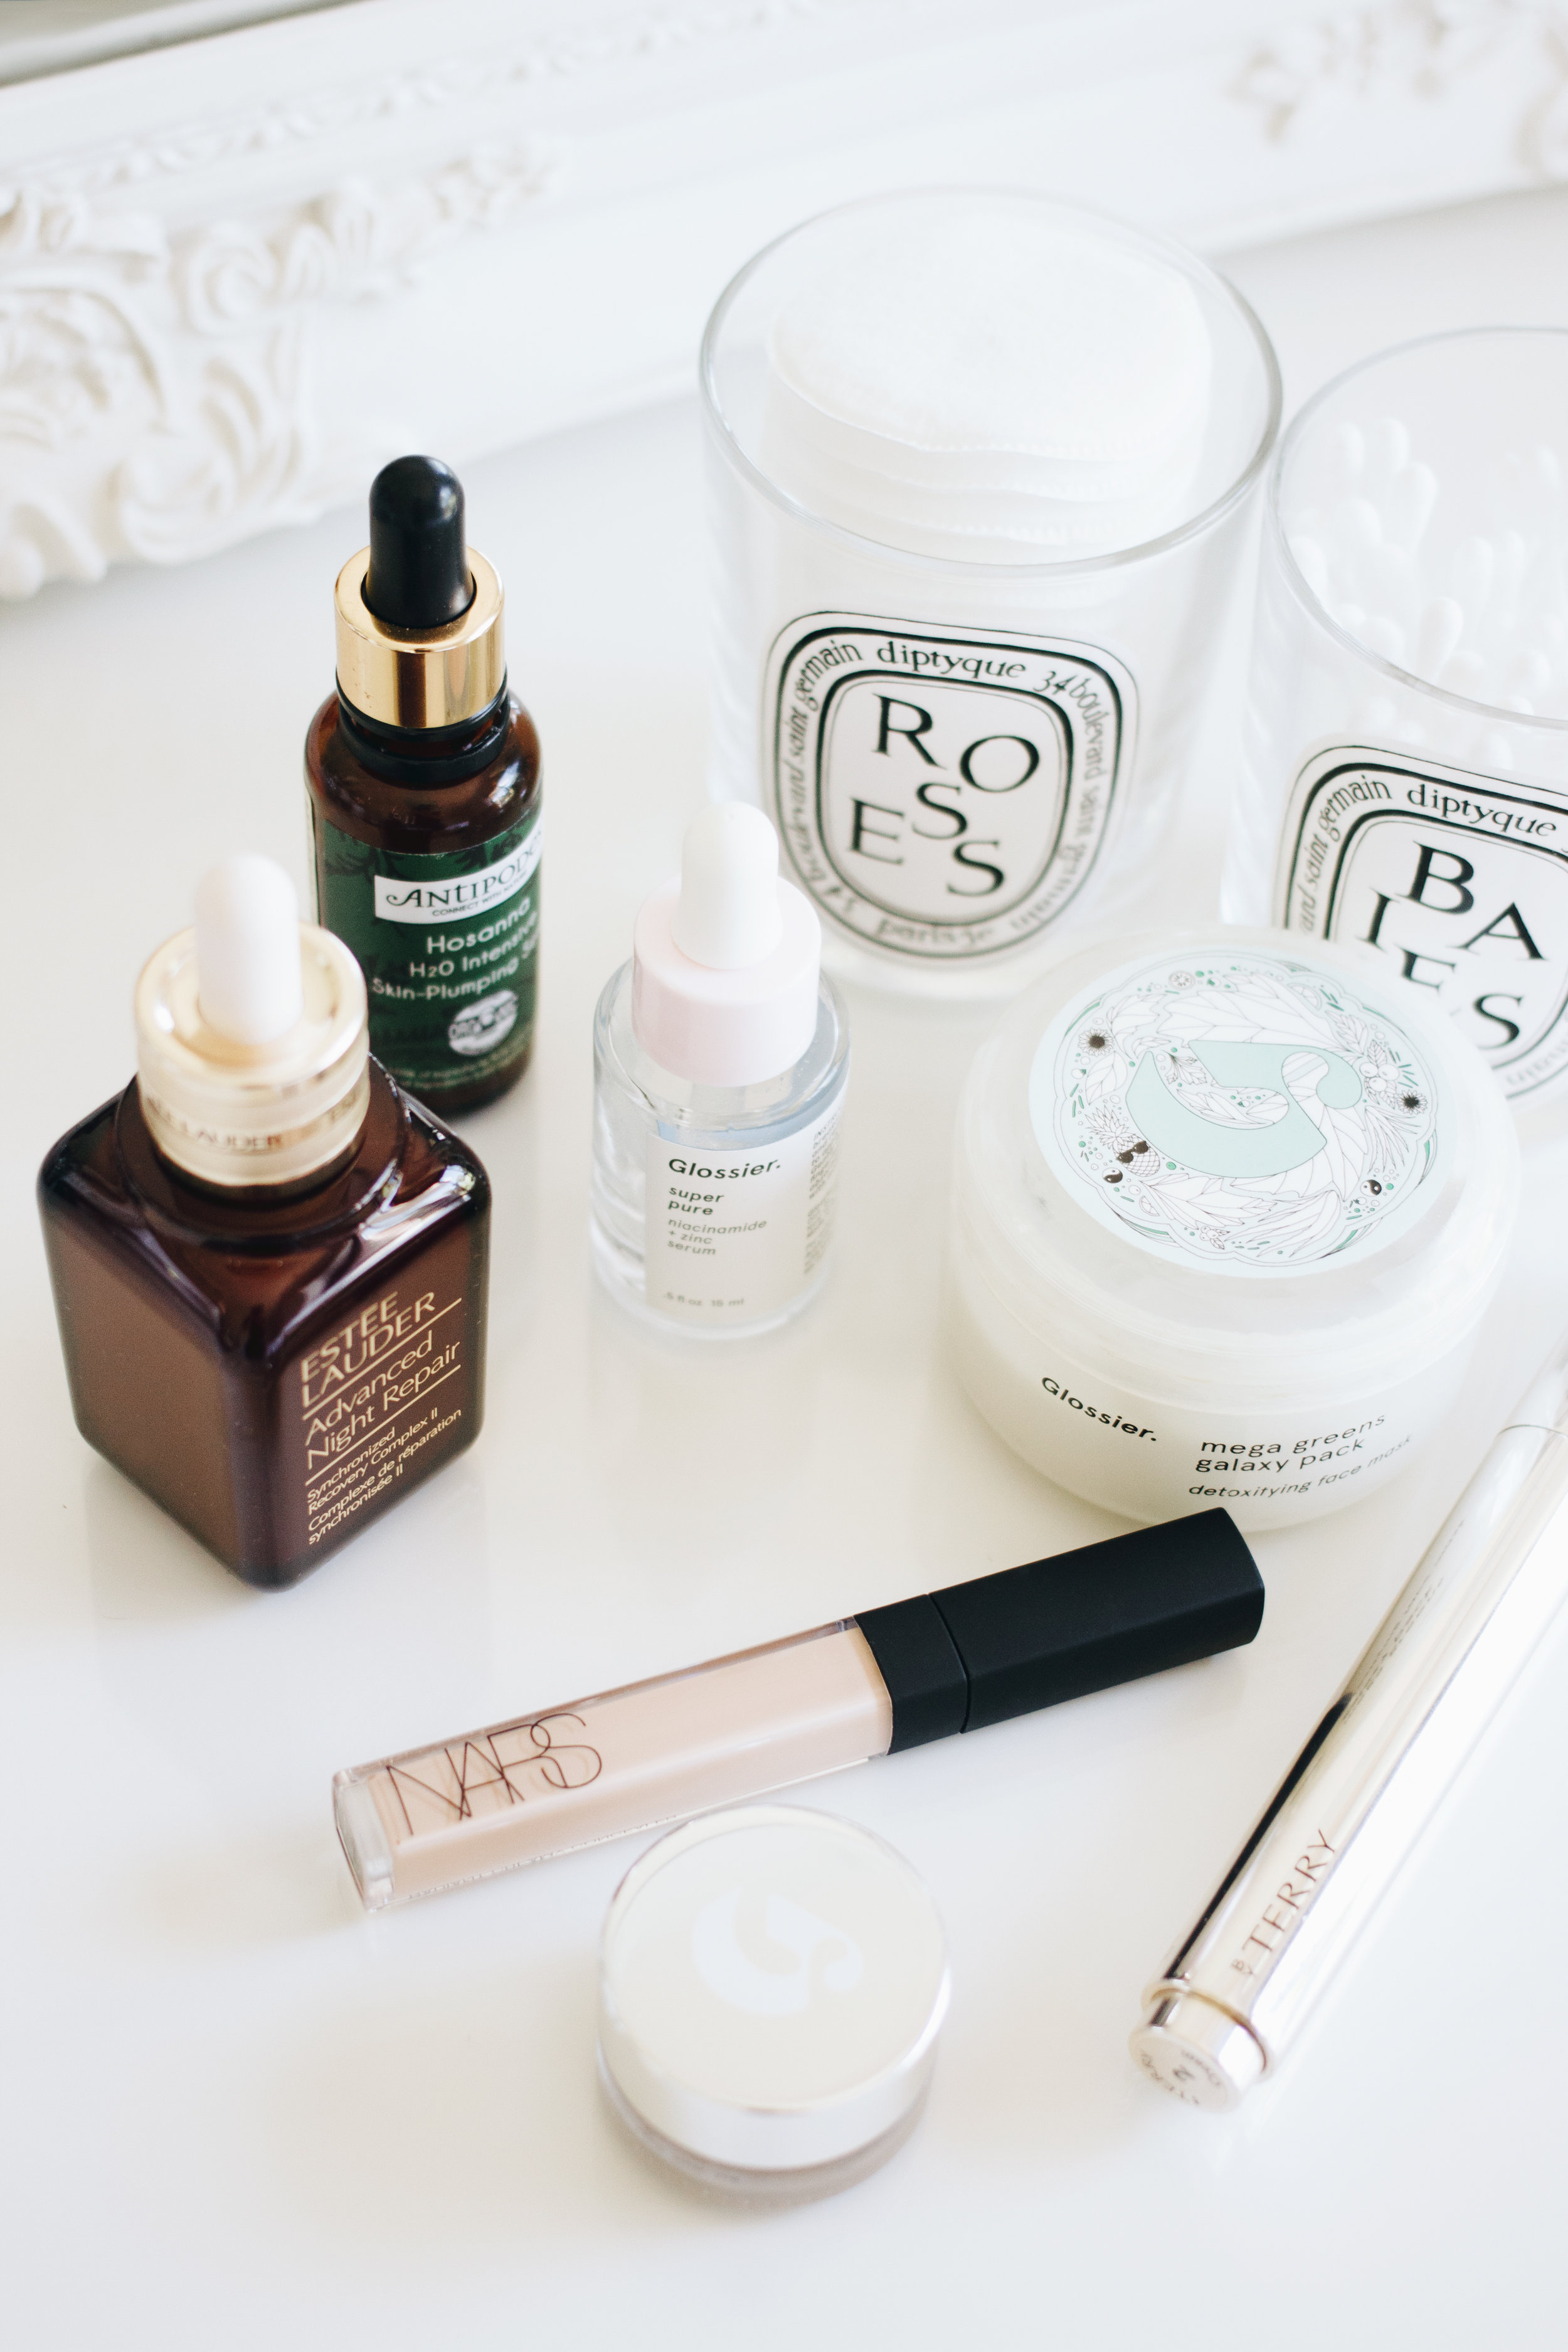 Breakouts and hyperpigmentation - Since coming off the pill six months ago (I wanted to take a little break from the hormones), breakouts and hyperpigmentation have made an unwelcome return into my life, and I've needed my skincare to diminish them as soon as possible and my makeup to disguise them as effectively as possible.Whether it's a fresh spot or a stubborn old one, I love treating my skin with the Glossier Mega Greens Galaxy Pack and upon washing it off, my skin is left feeling clean, soothed and purified. A clay-based mask made with vitamin-rich leafy greens and superfruit antioxidants, it's not at all stripping or drying and I love the fresh and clarified feeling I get after using this.For serums, Glossier Super Pure(I've unfortunately run out, but will be replacing it with The Ordinary Niacinamide 10% + Zinc 1% soon) and Estée Lauder Advanced Night Repair are my two standouts. The former's two key ingredients are niacinamide and zinc, which work to remove excess sebum and calm blemishes, and when applied at night, I wake up in the morning with my spots visibly reduced.As for the latter, this has been a part of my skincare routine going on seven years now and I can't imagine life without it. I've raved on about it a countless amount of times on my blog, but basically, it's a miracle worker for hyperpigmentation and nothing evens out my skin tone quite like it.